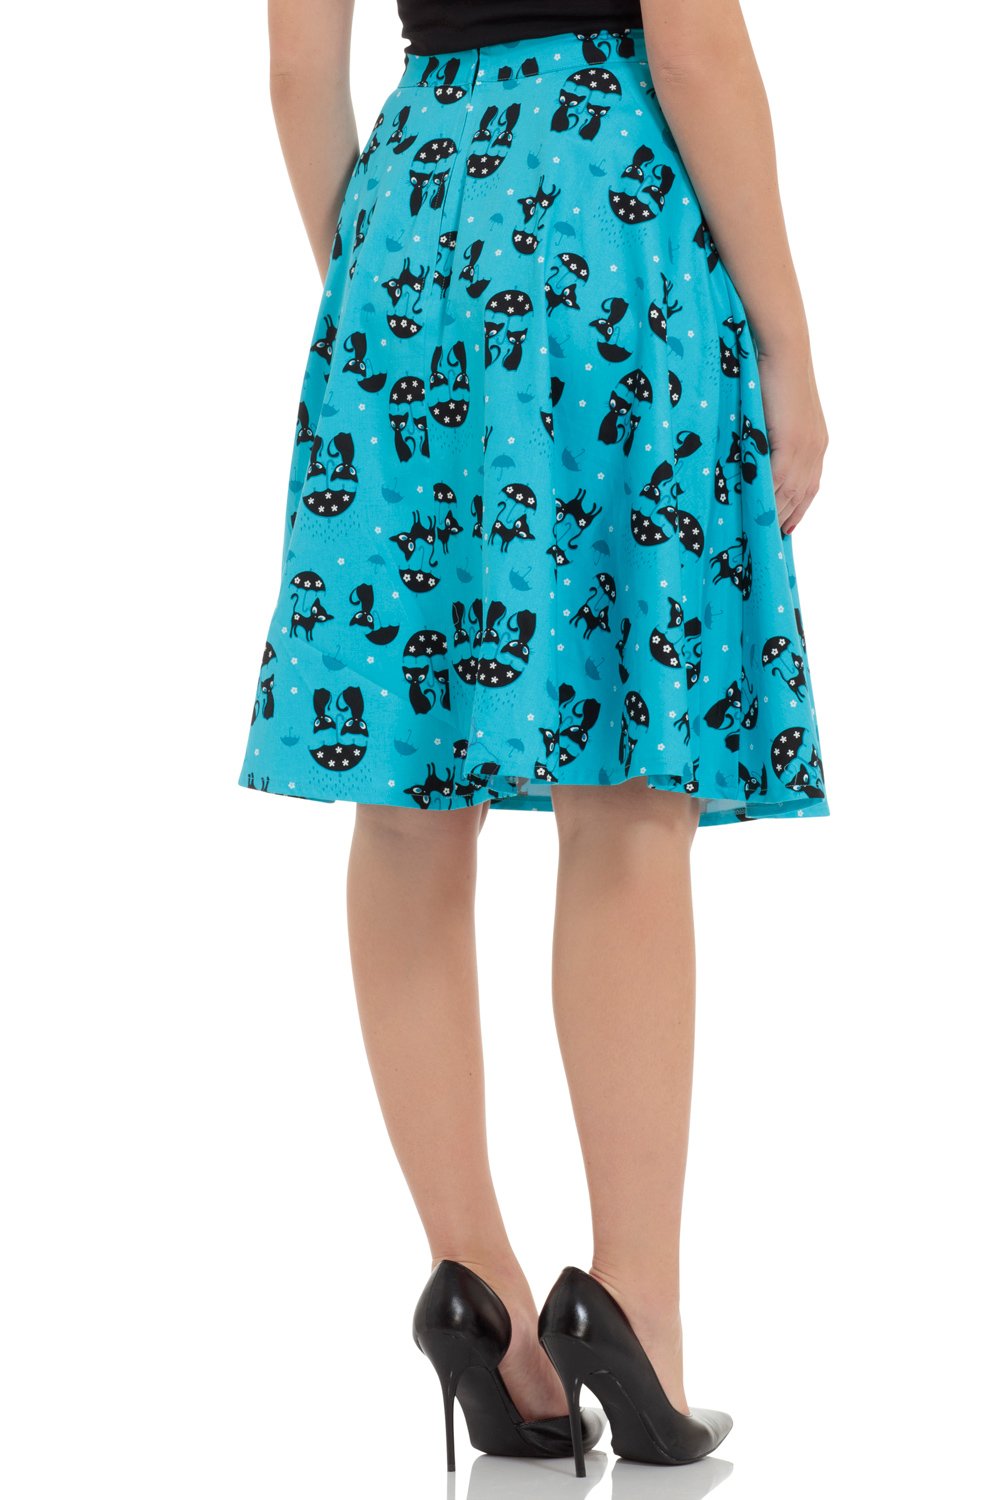 Morgana Blue Retro Kitty Skirt